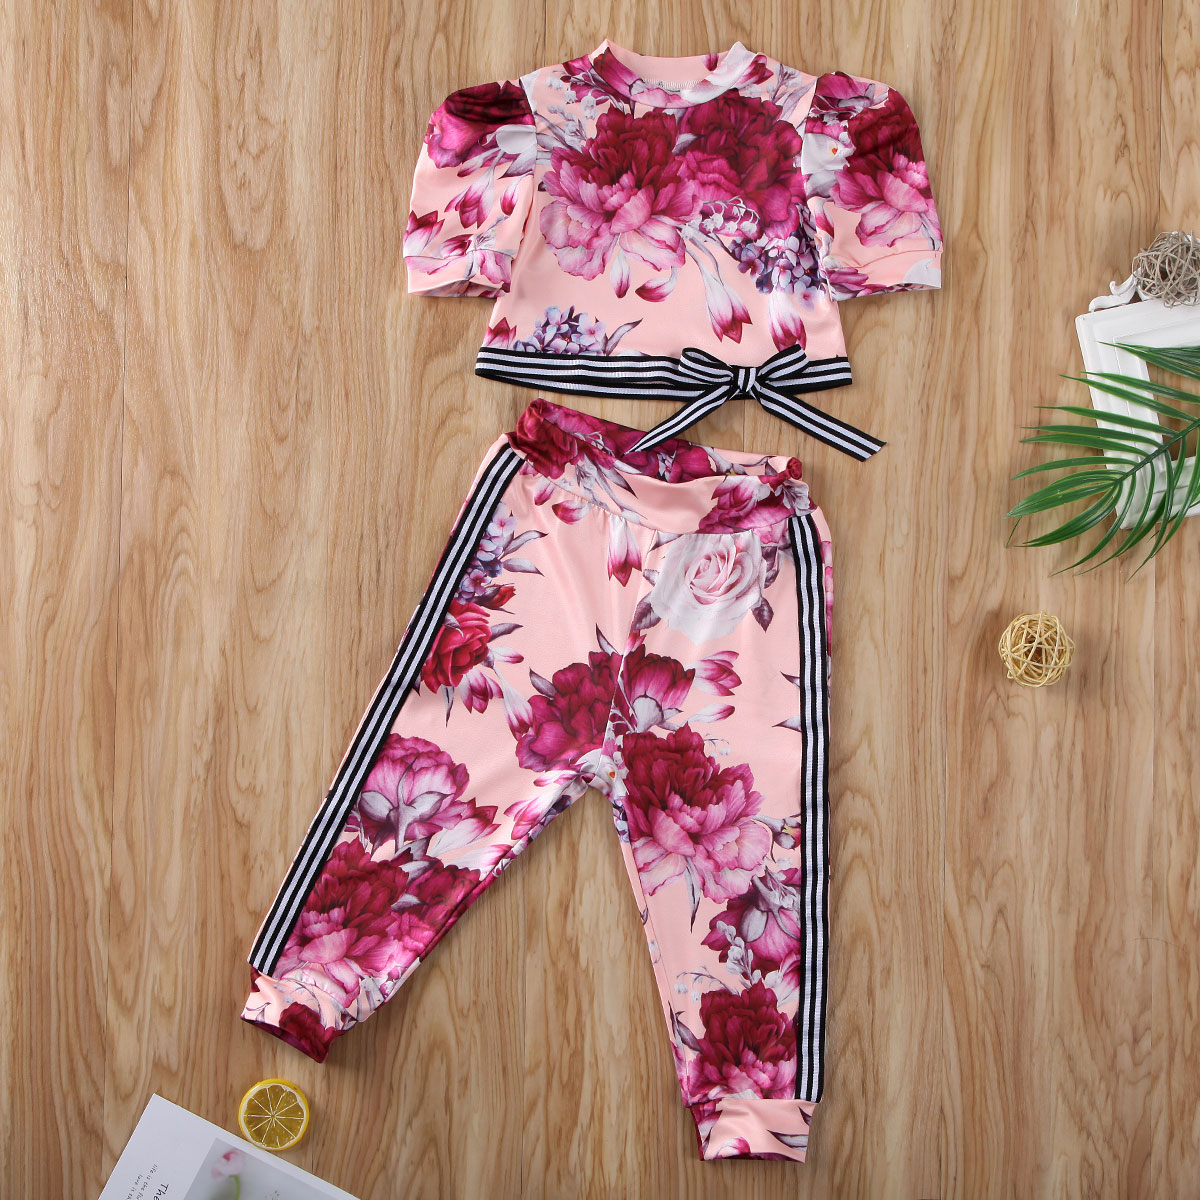 Pudcoco Toddler Baby Girl Clothes Flower Print Short Sleeve Striped Tops Long Pants 2Pcs Outfits Cotton Clothes